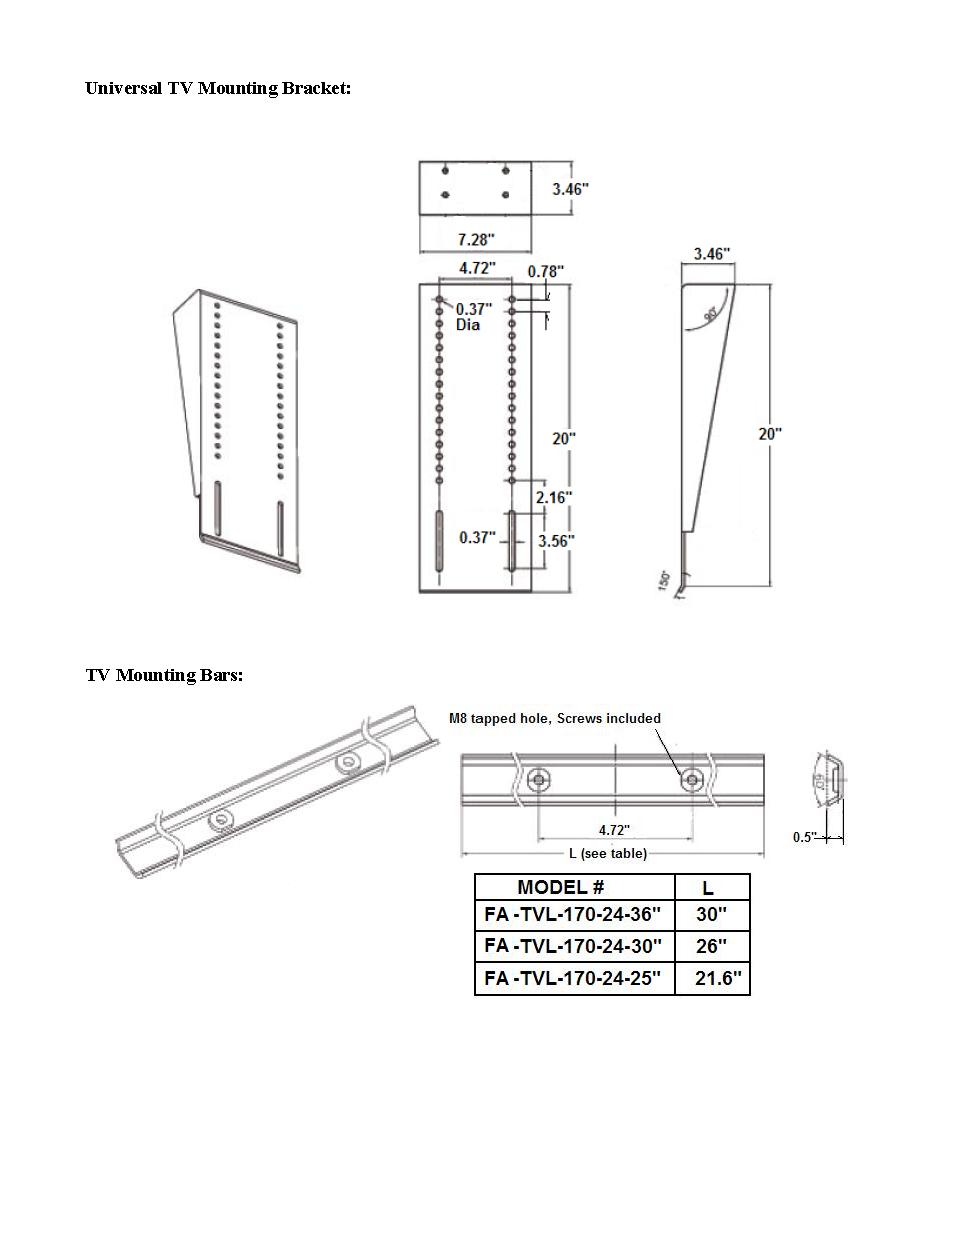 TV Lift Dimensions Page 3